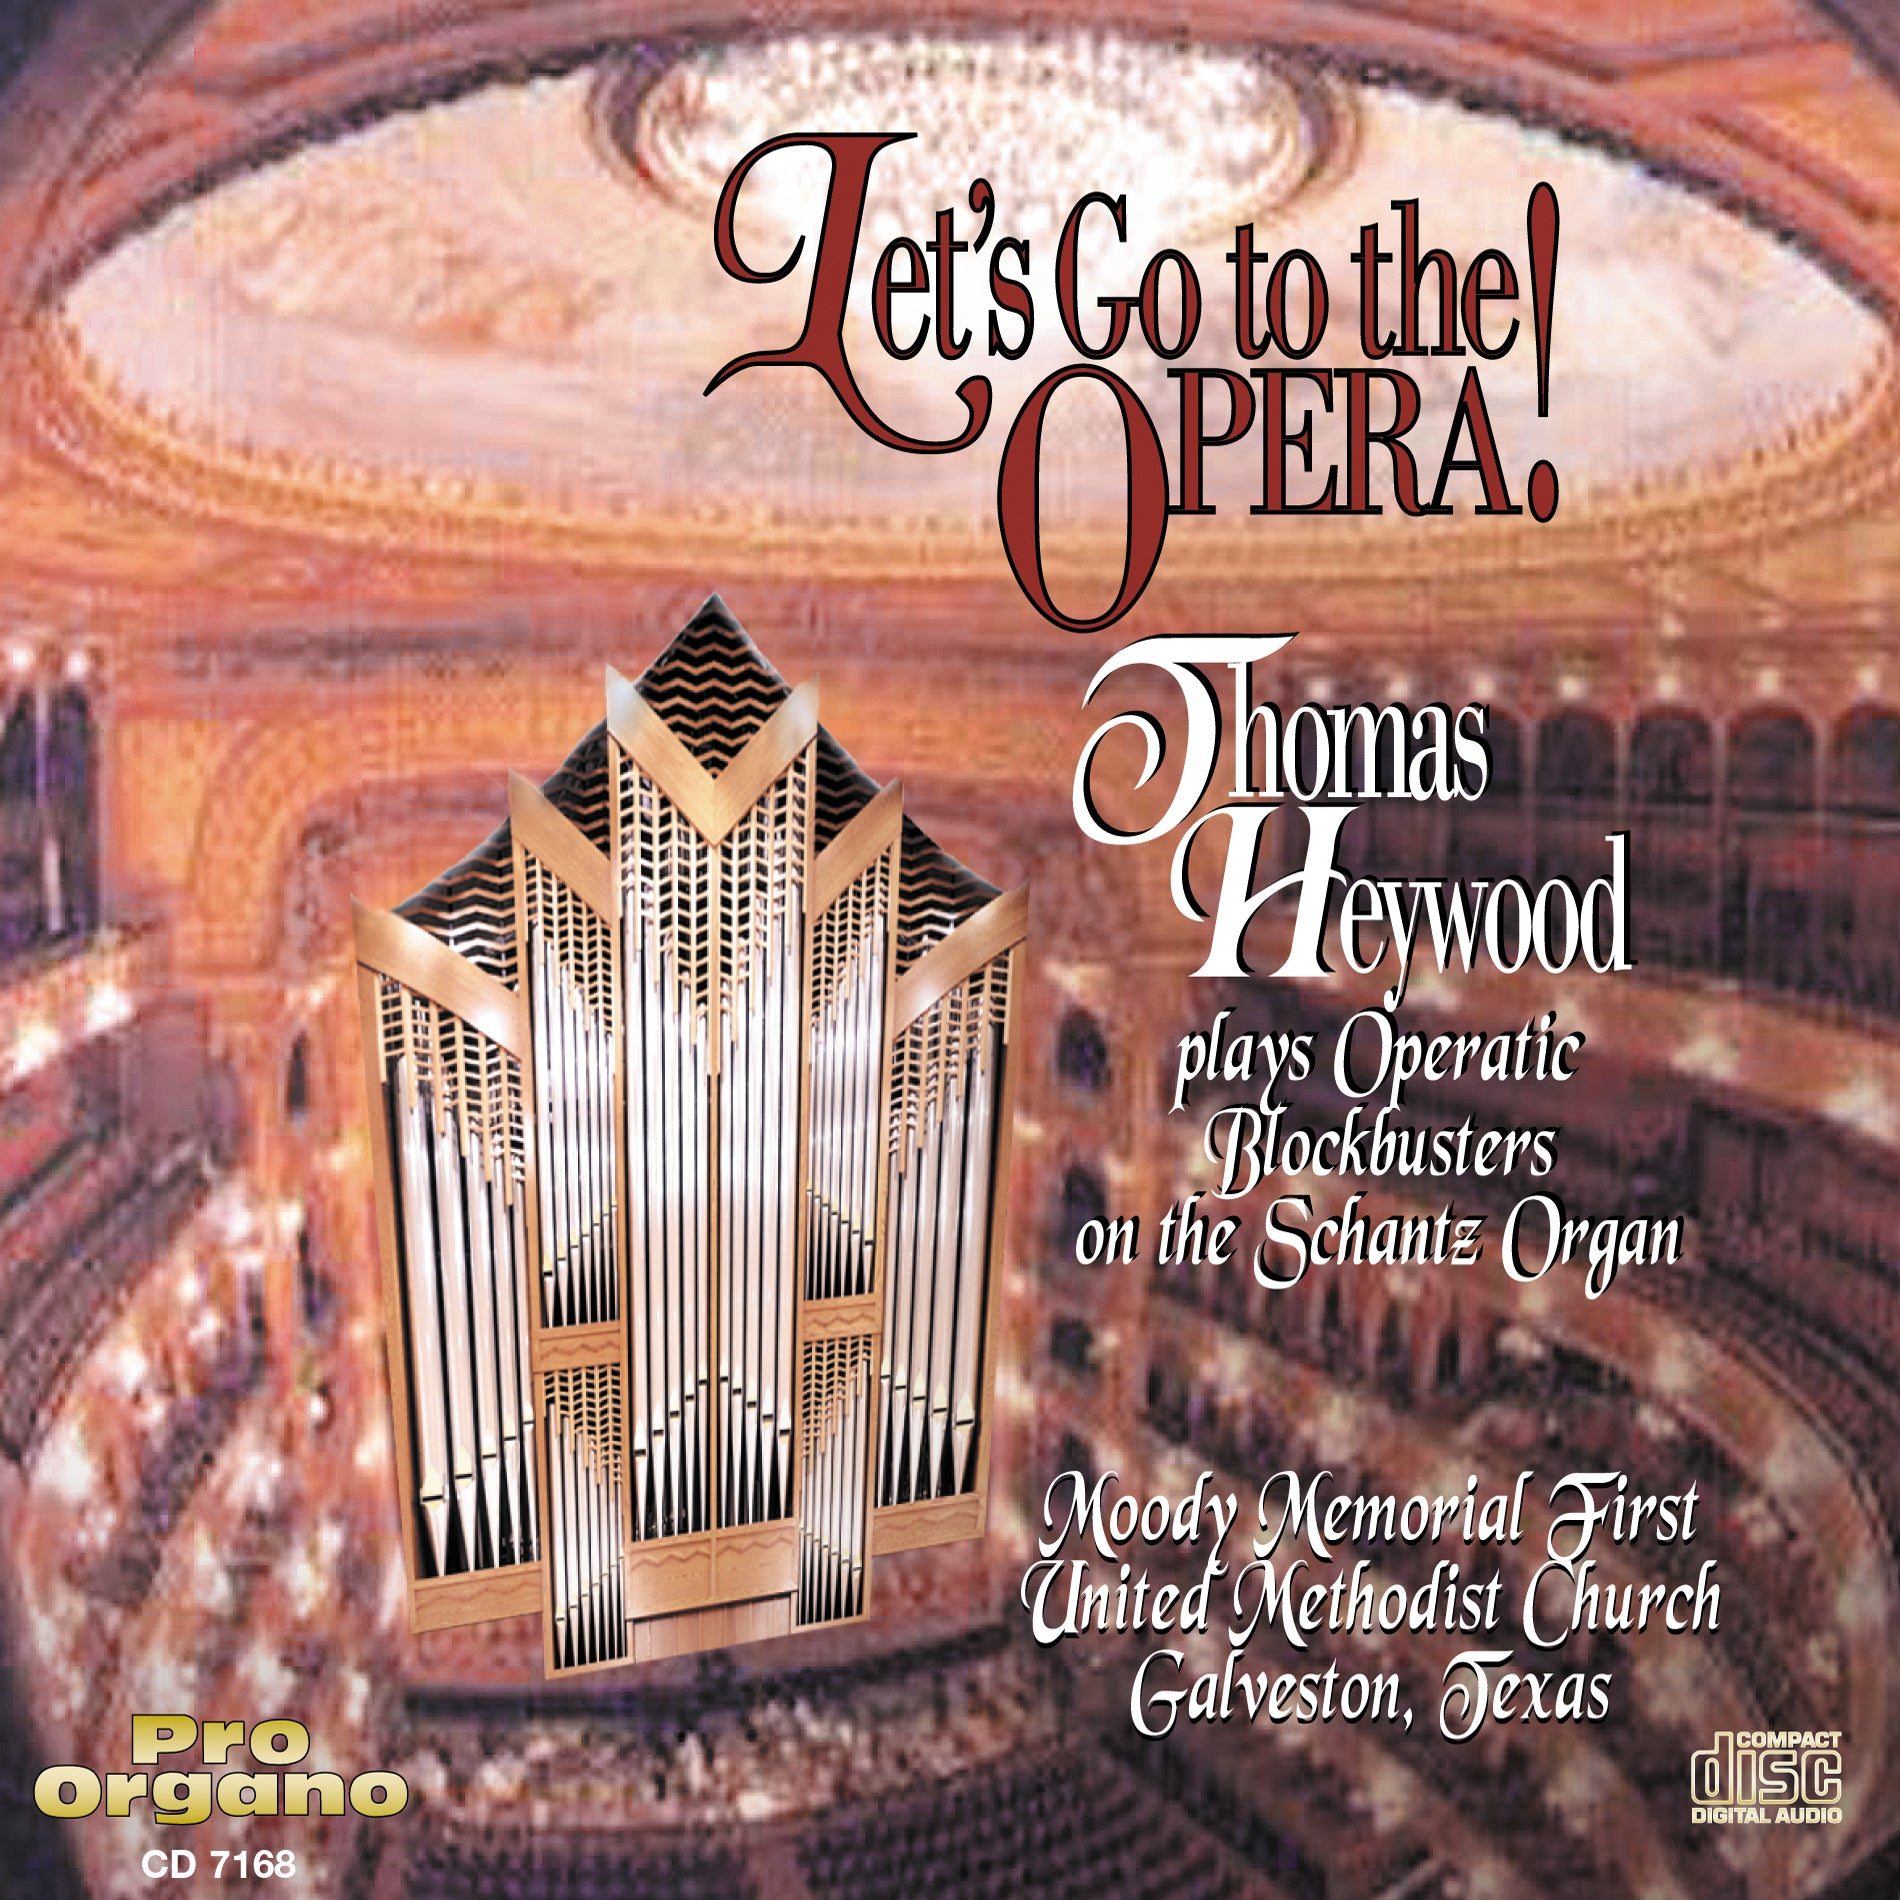 Let's Go to the Opera! (CD) - Concert Organ International